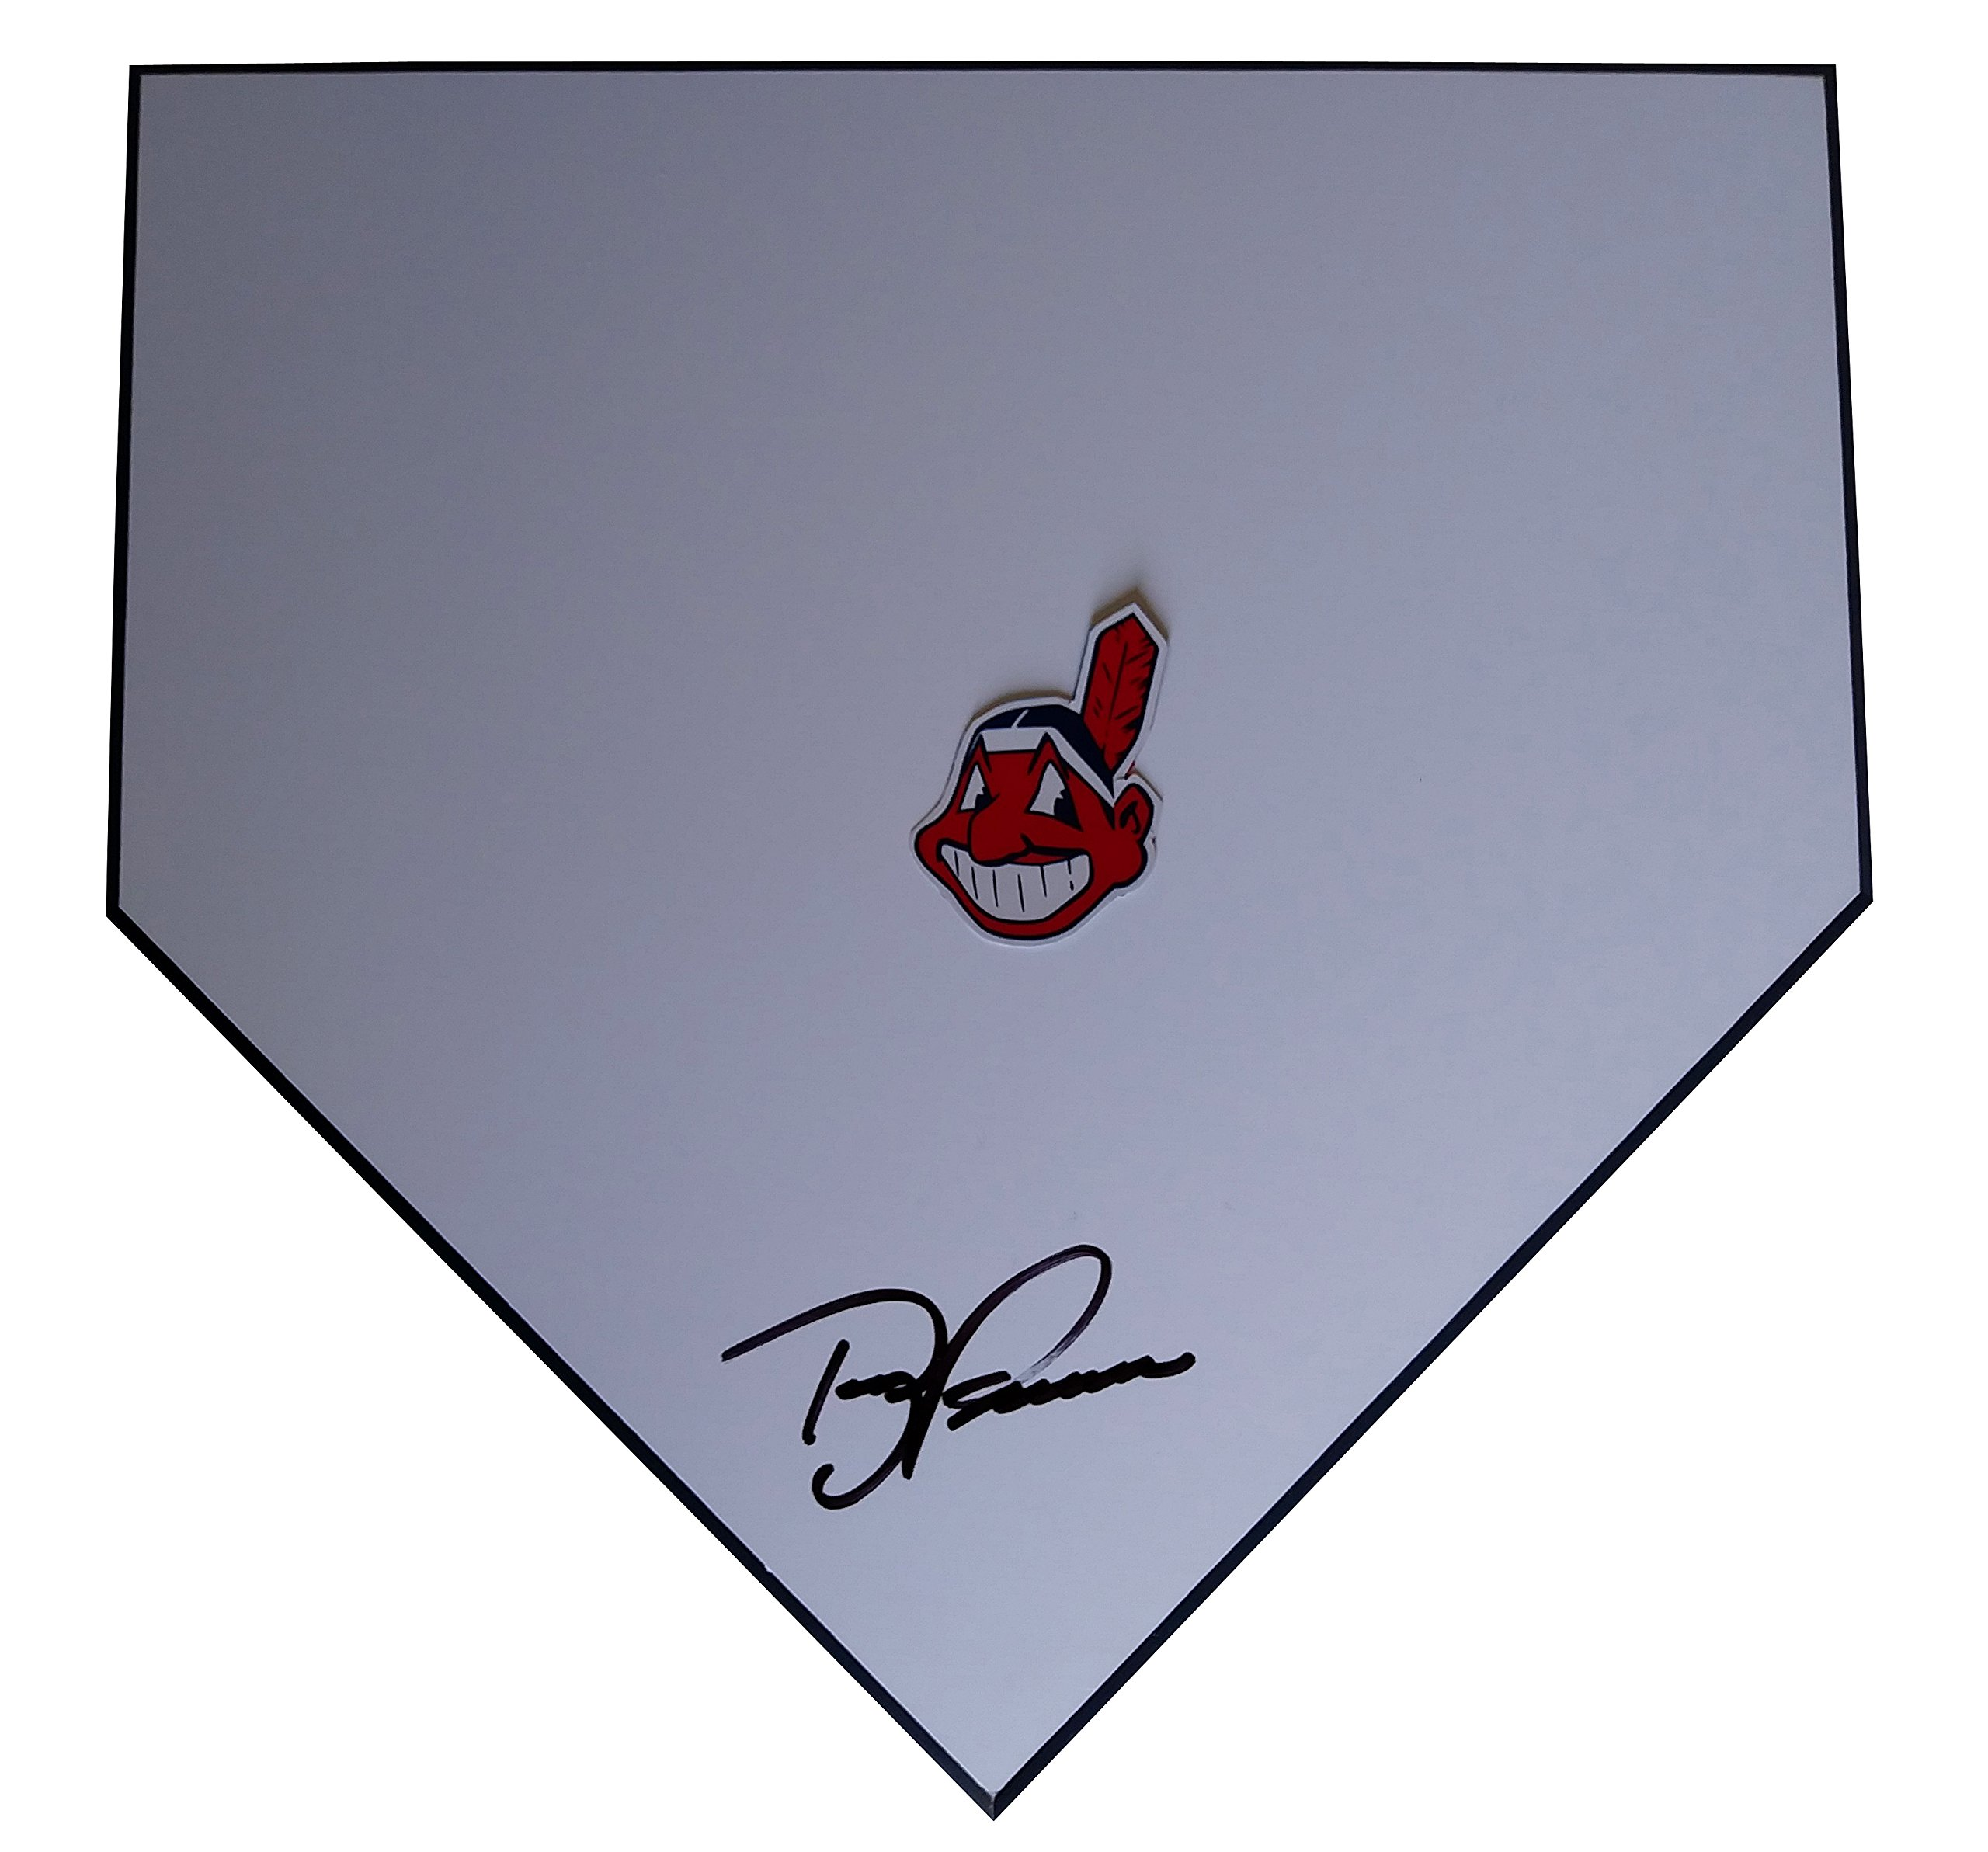 Cleveland Indians Terry Francona Autographed Hand Signed Baseball Home Plate Base with Proof Photo of Signing and COA